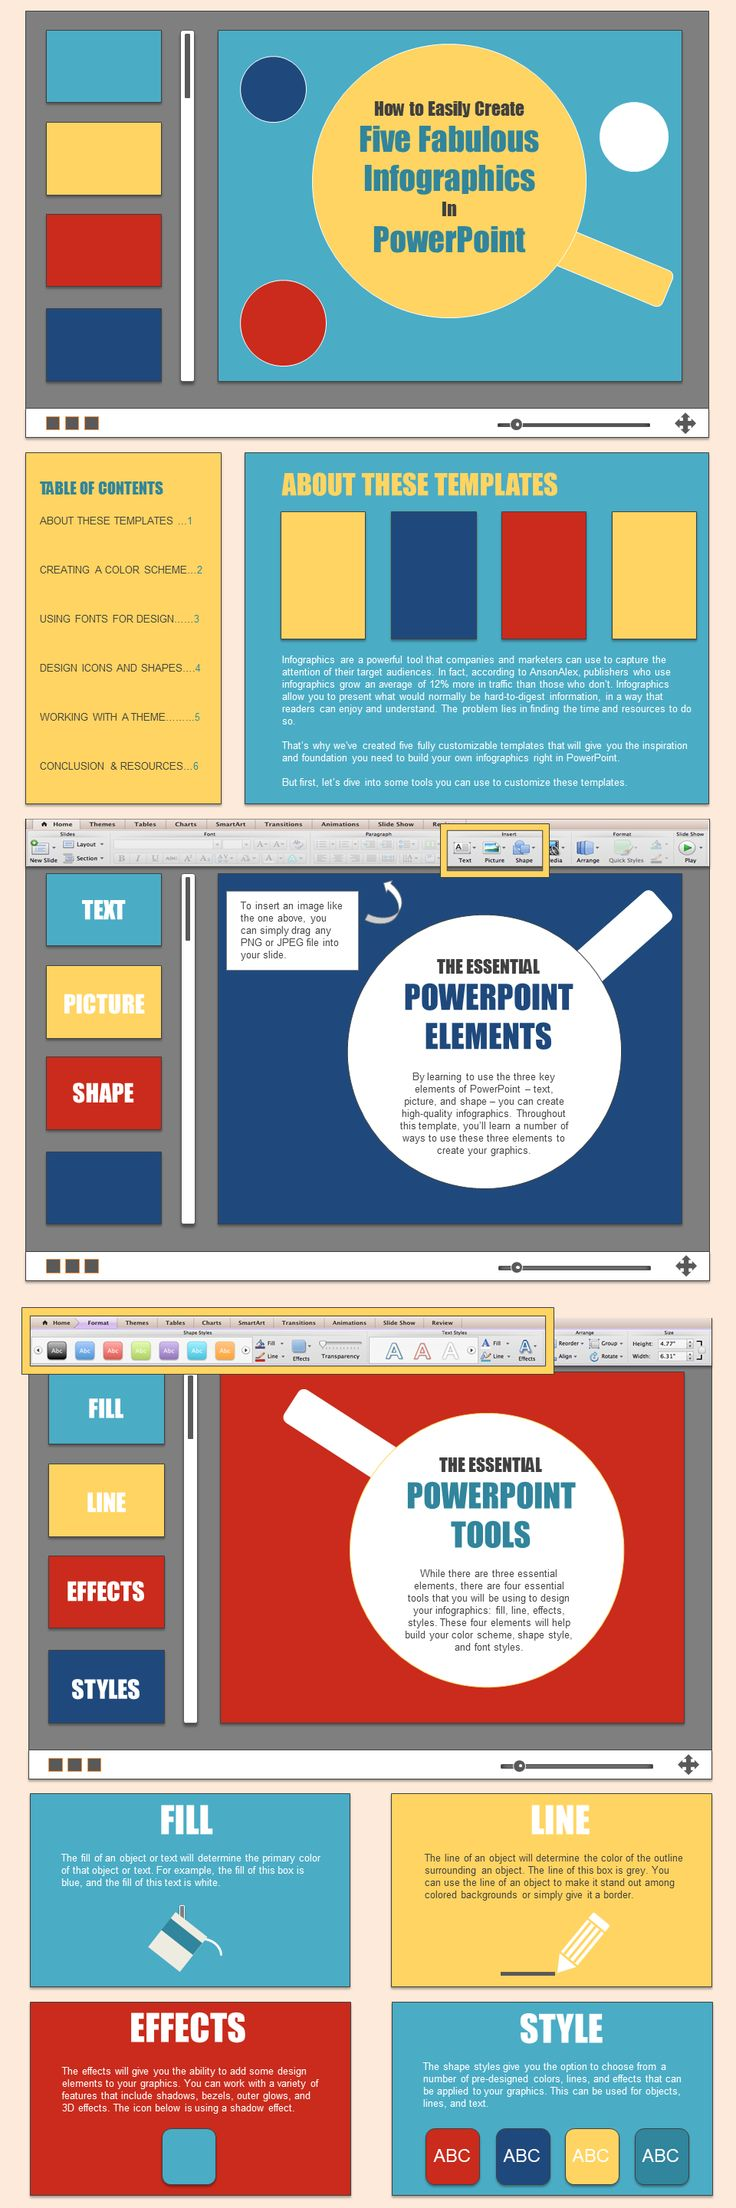 5 Infographics to Teach You How to Easily Create Infographics in PowerPoint